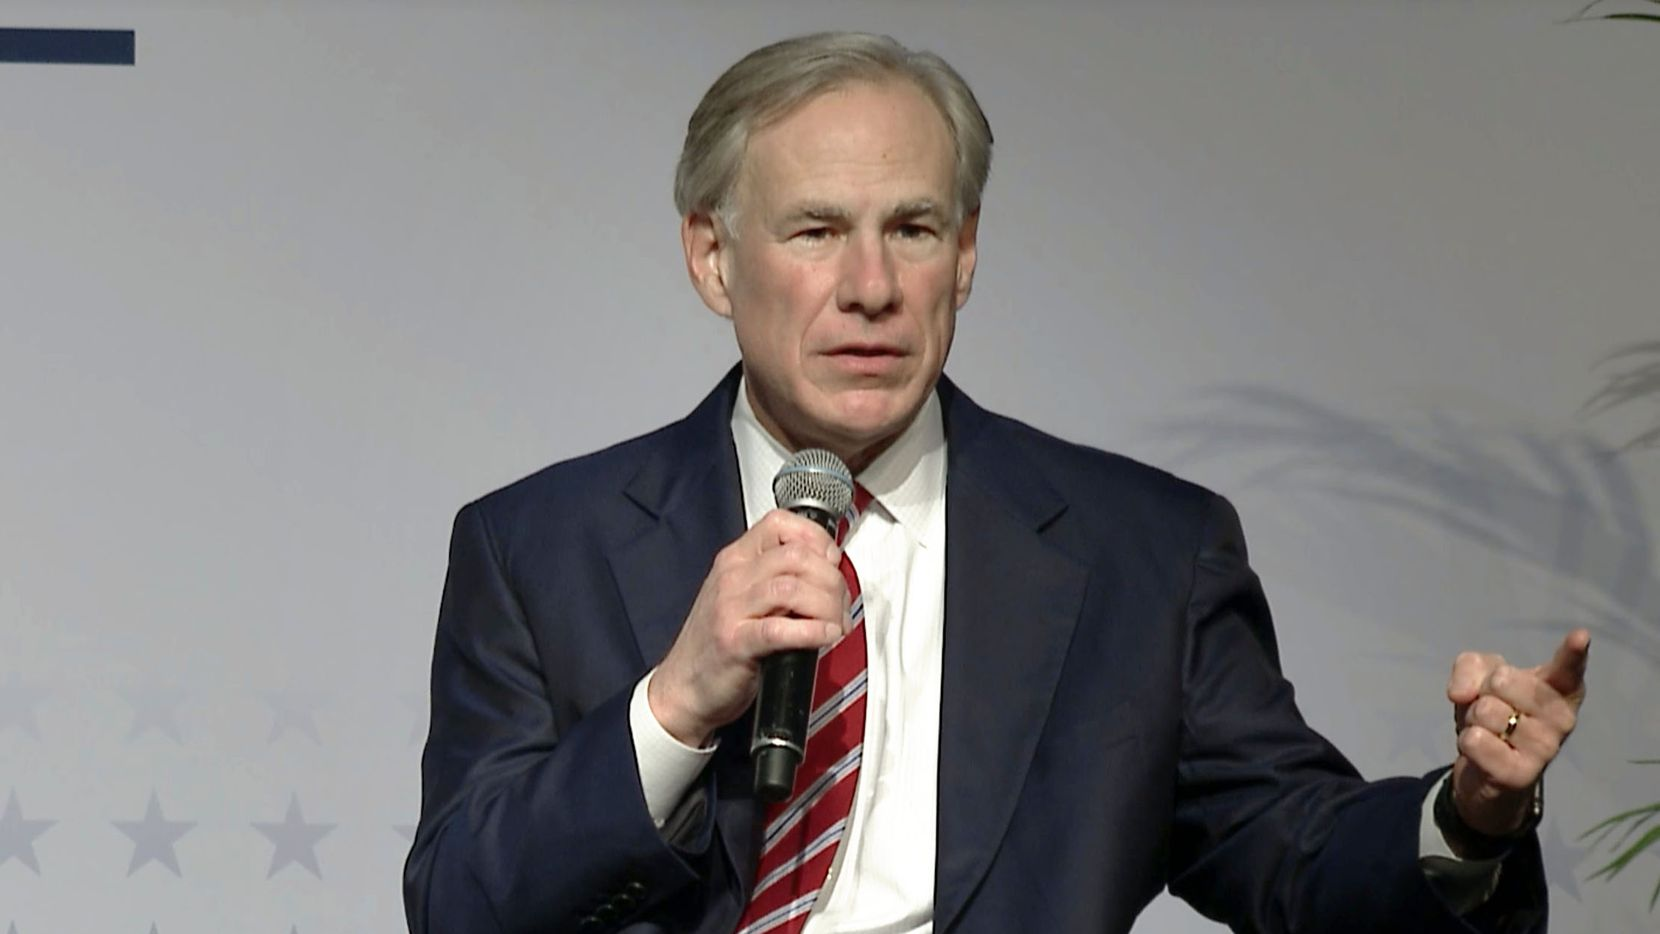 In this screen grab, Texas Governor Greg Abbott (right) speaks during a plenary keynote conversation during the Texas Public Policy Foundation's Policy Orientation event at the AT&T Conference Center in Austin, Texas, on Thursday, Jan. 14, 2021.